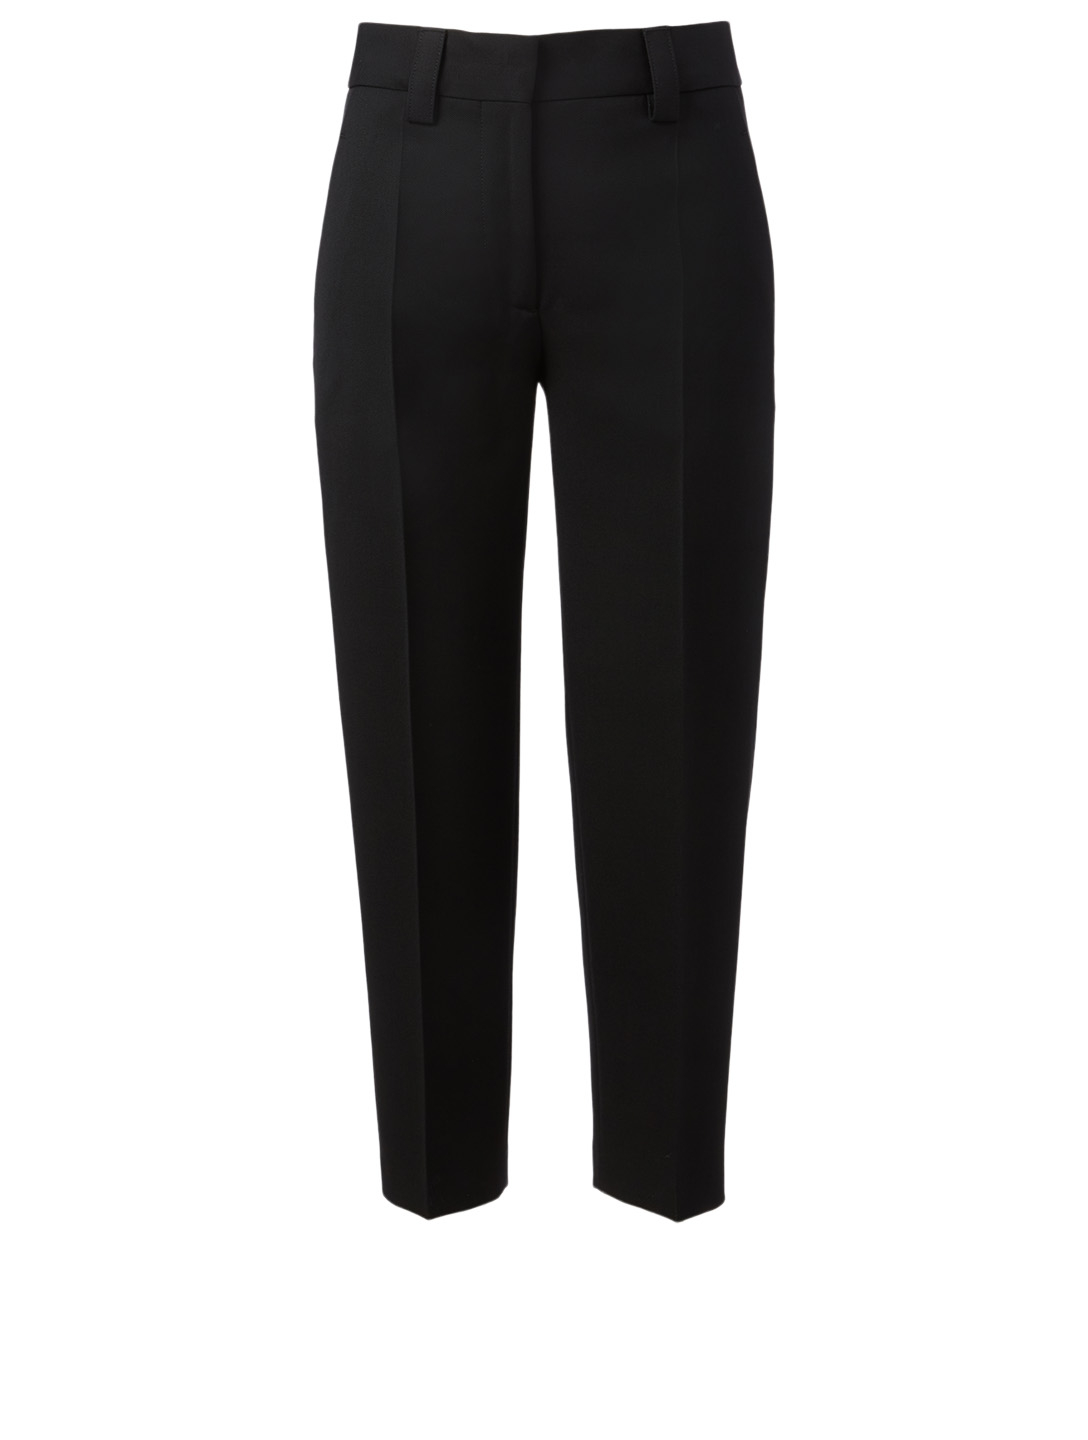 ACNE STUDIOS Wool-Blend Tapered Pants Women's Black